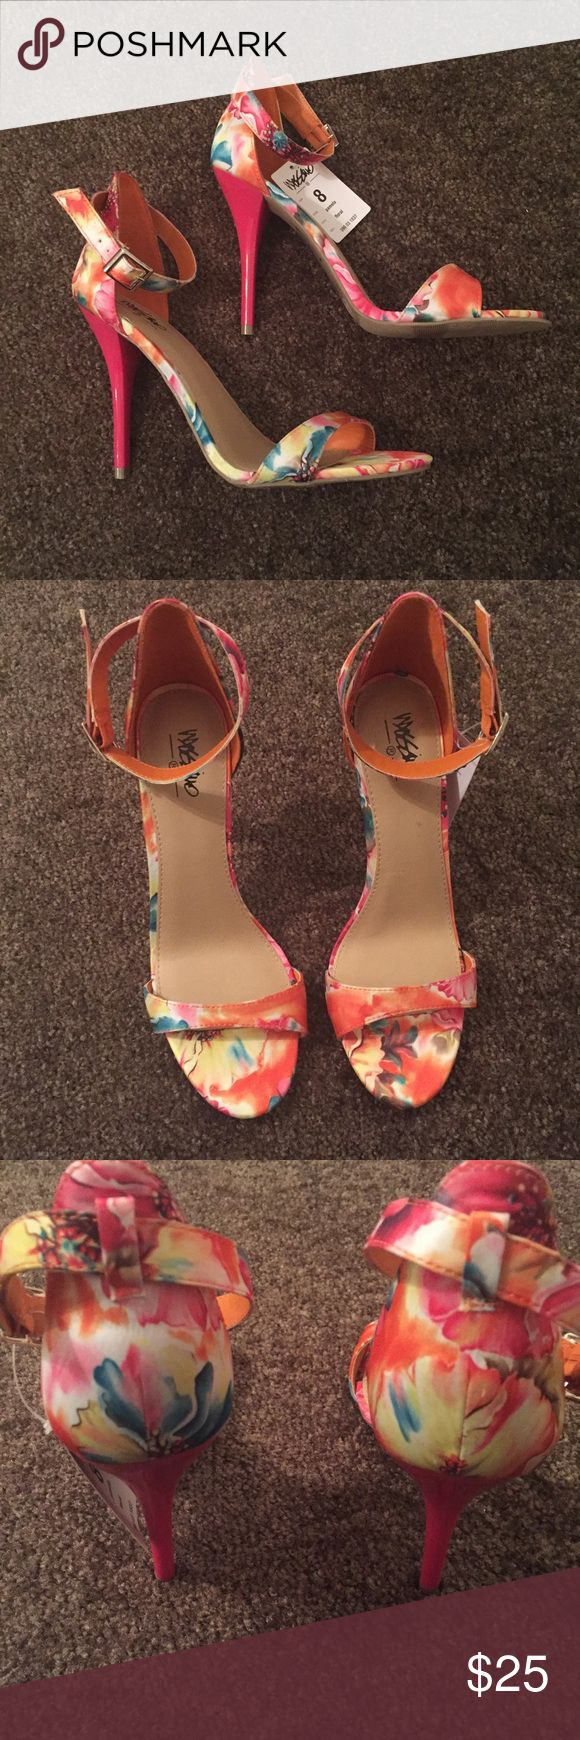 Mossimo 'Pamela' Floral Strappy Heels NWT. Perfect for the upcoming Spring and Summer seasons! Mossimo Supply Co. Shoes Heels